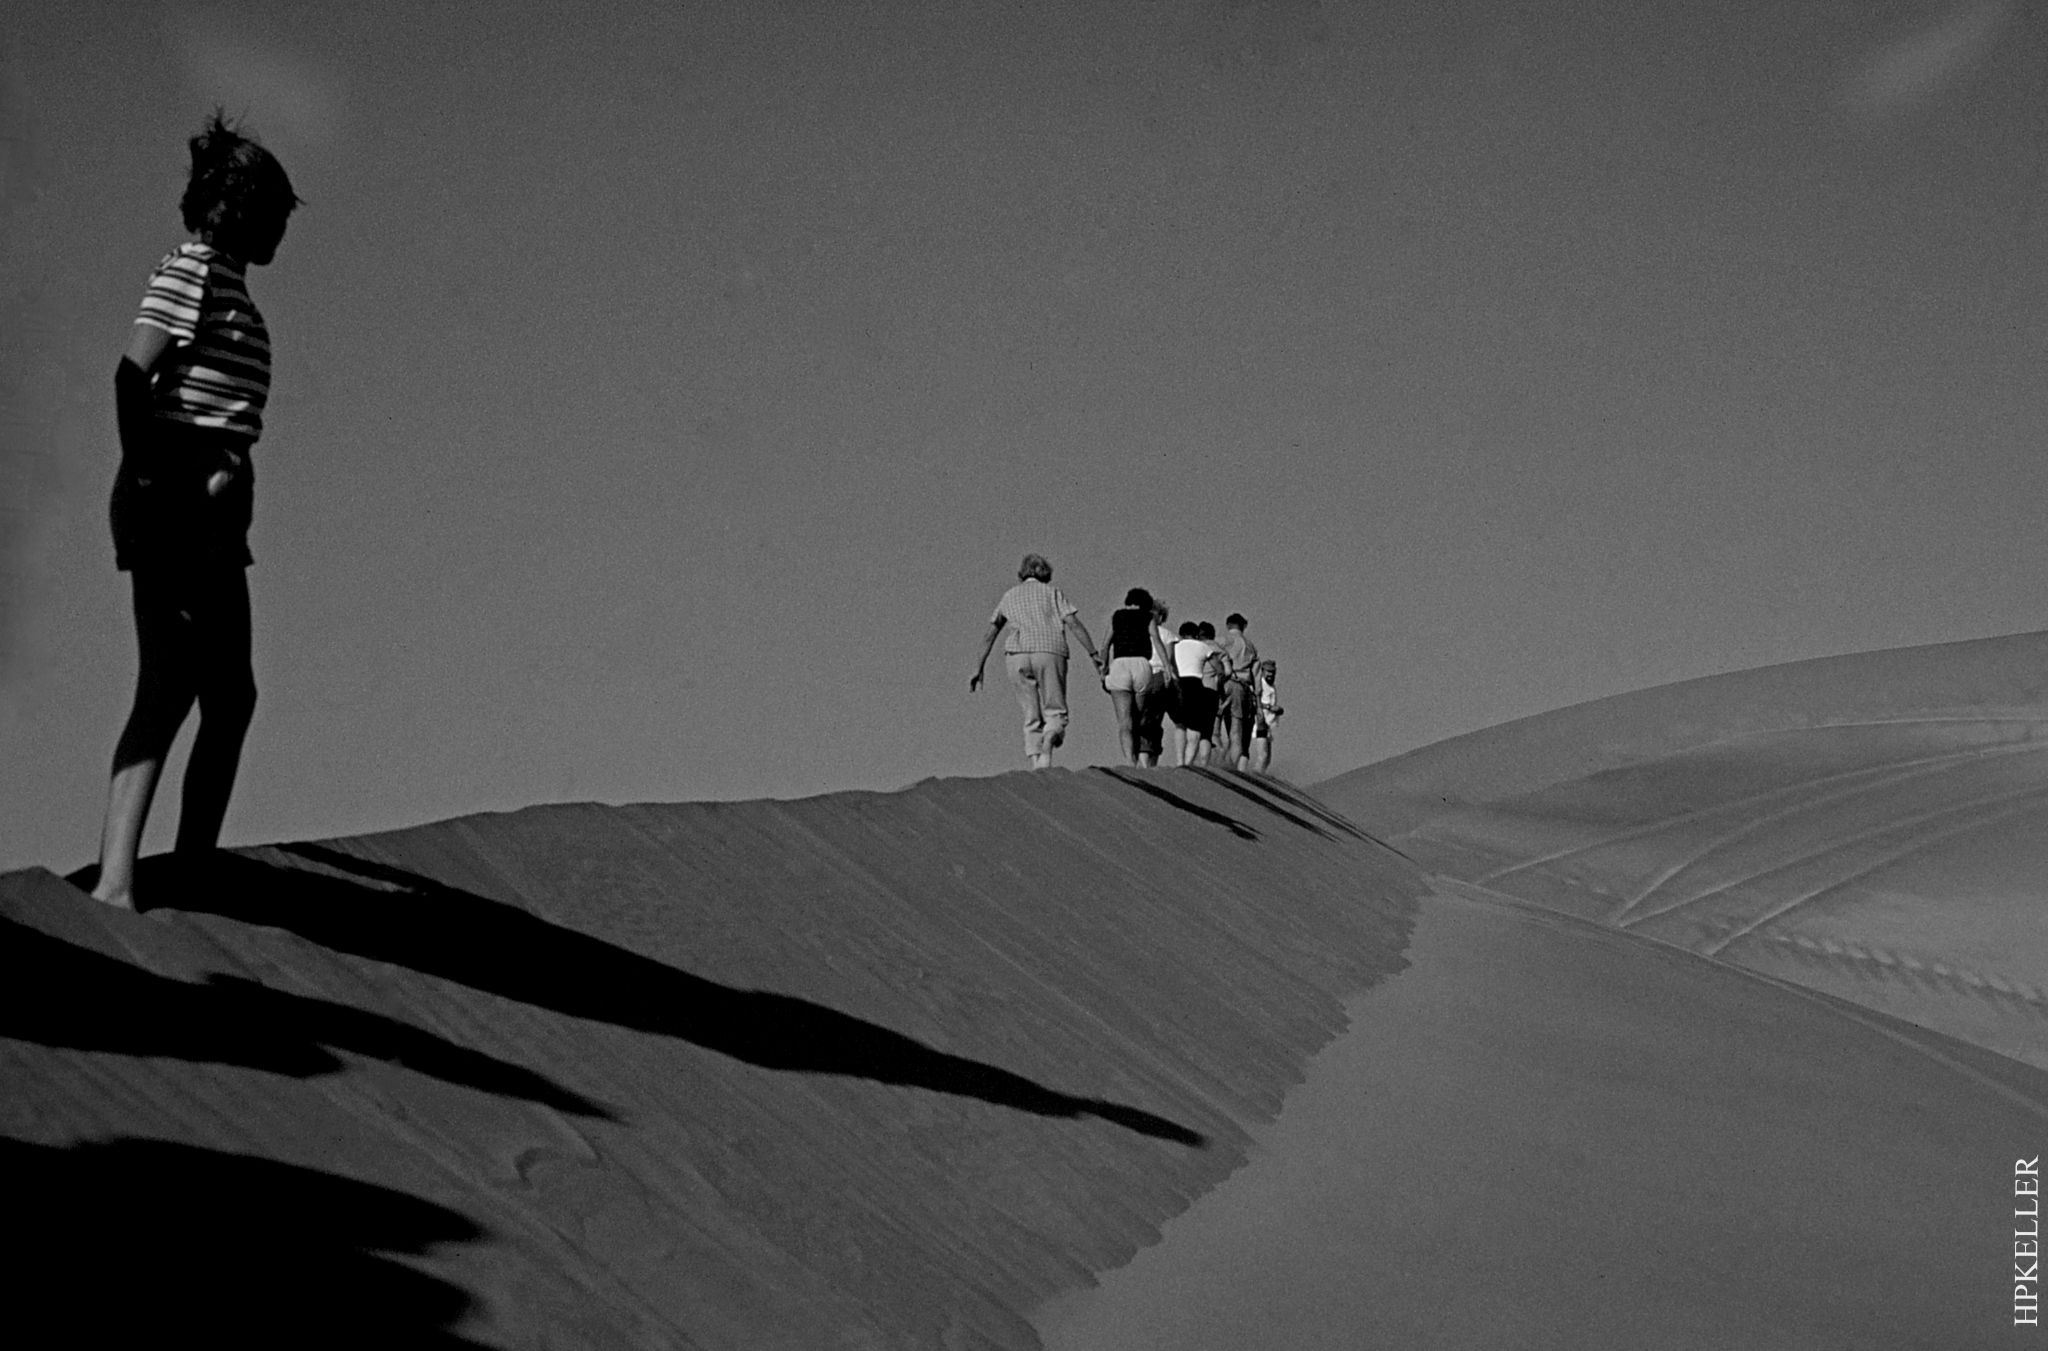 Some years ago, ...in Maspalomas (Gran Canaria) 1979 - Analogscan by Hans-Peter Keller